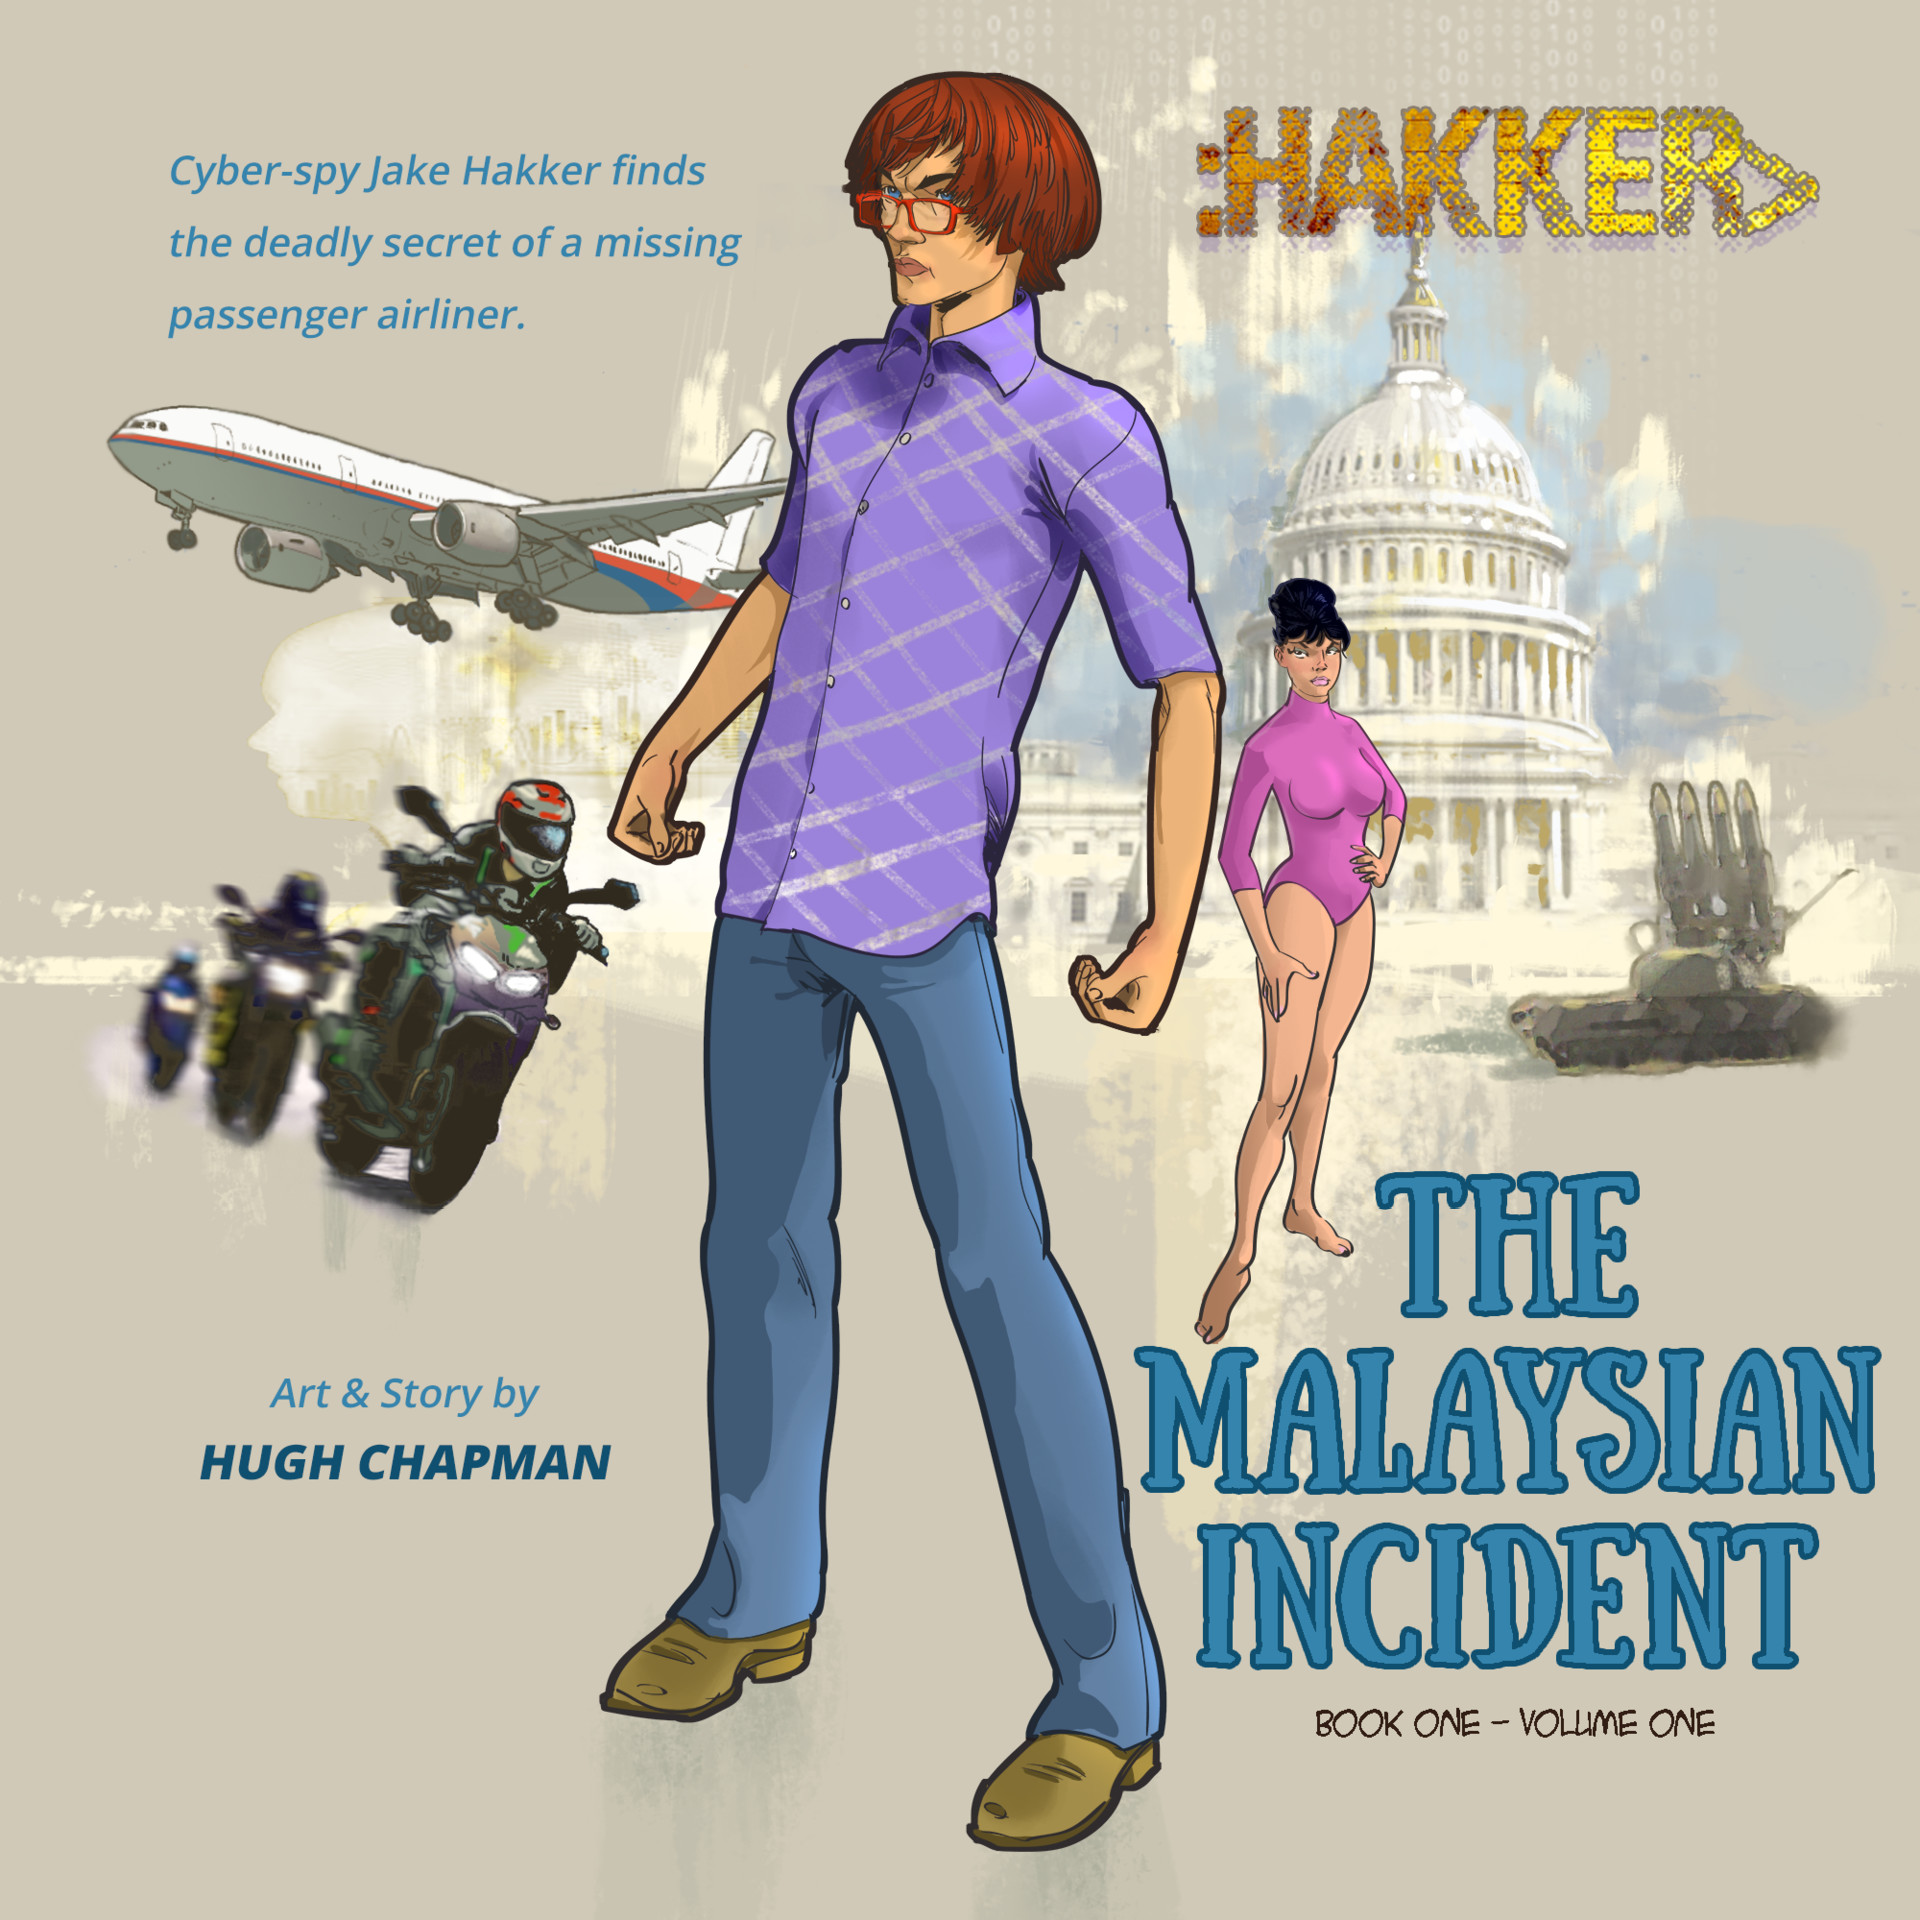 An Instagram cover(?) for the first book, The Malaysian Incident